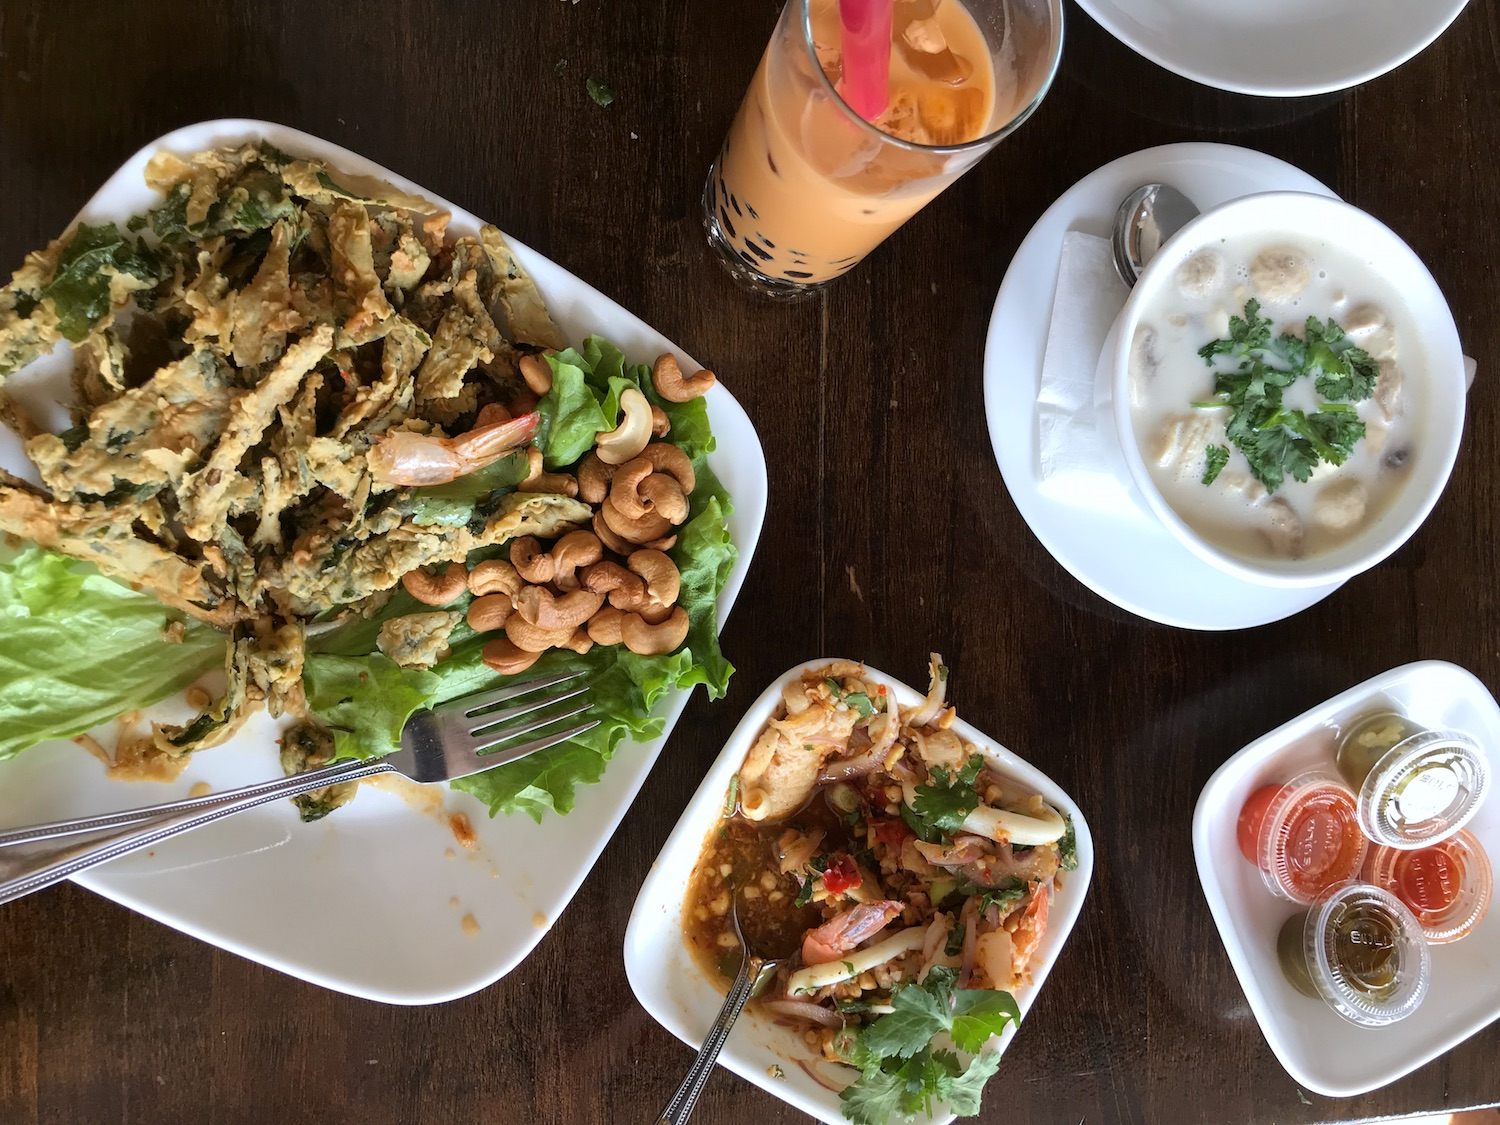 A spread at the James Beard nominated SriPraPhai restaurant in Woodside, Queens.